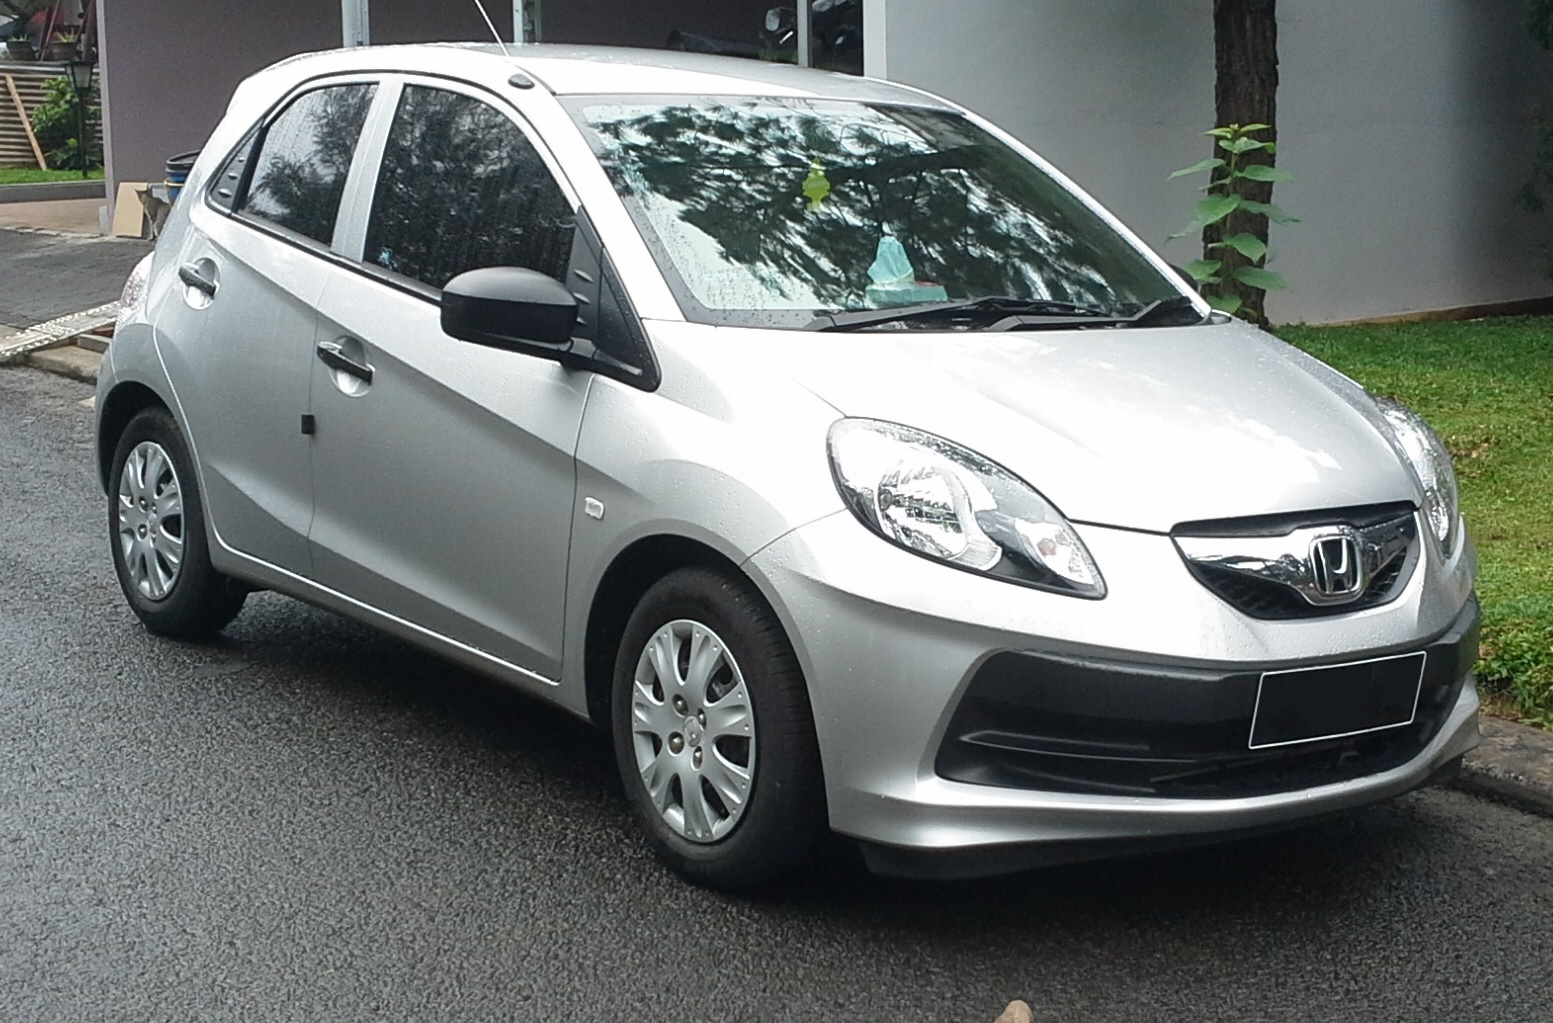 Honda city car price in india 2014